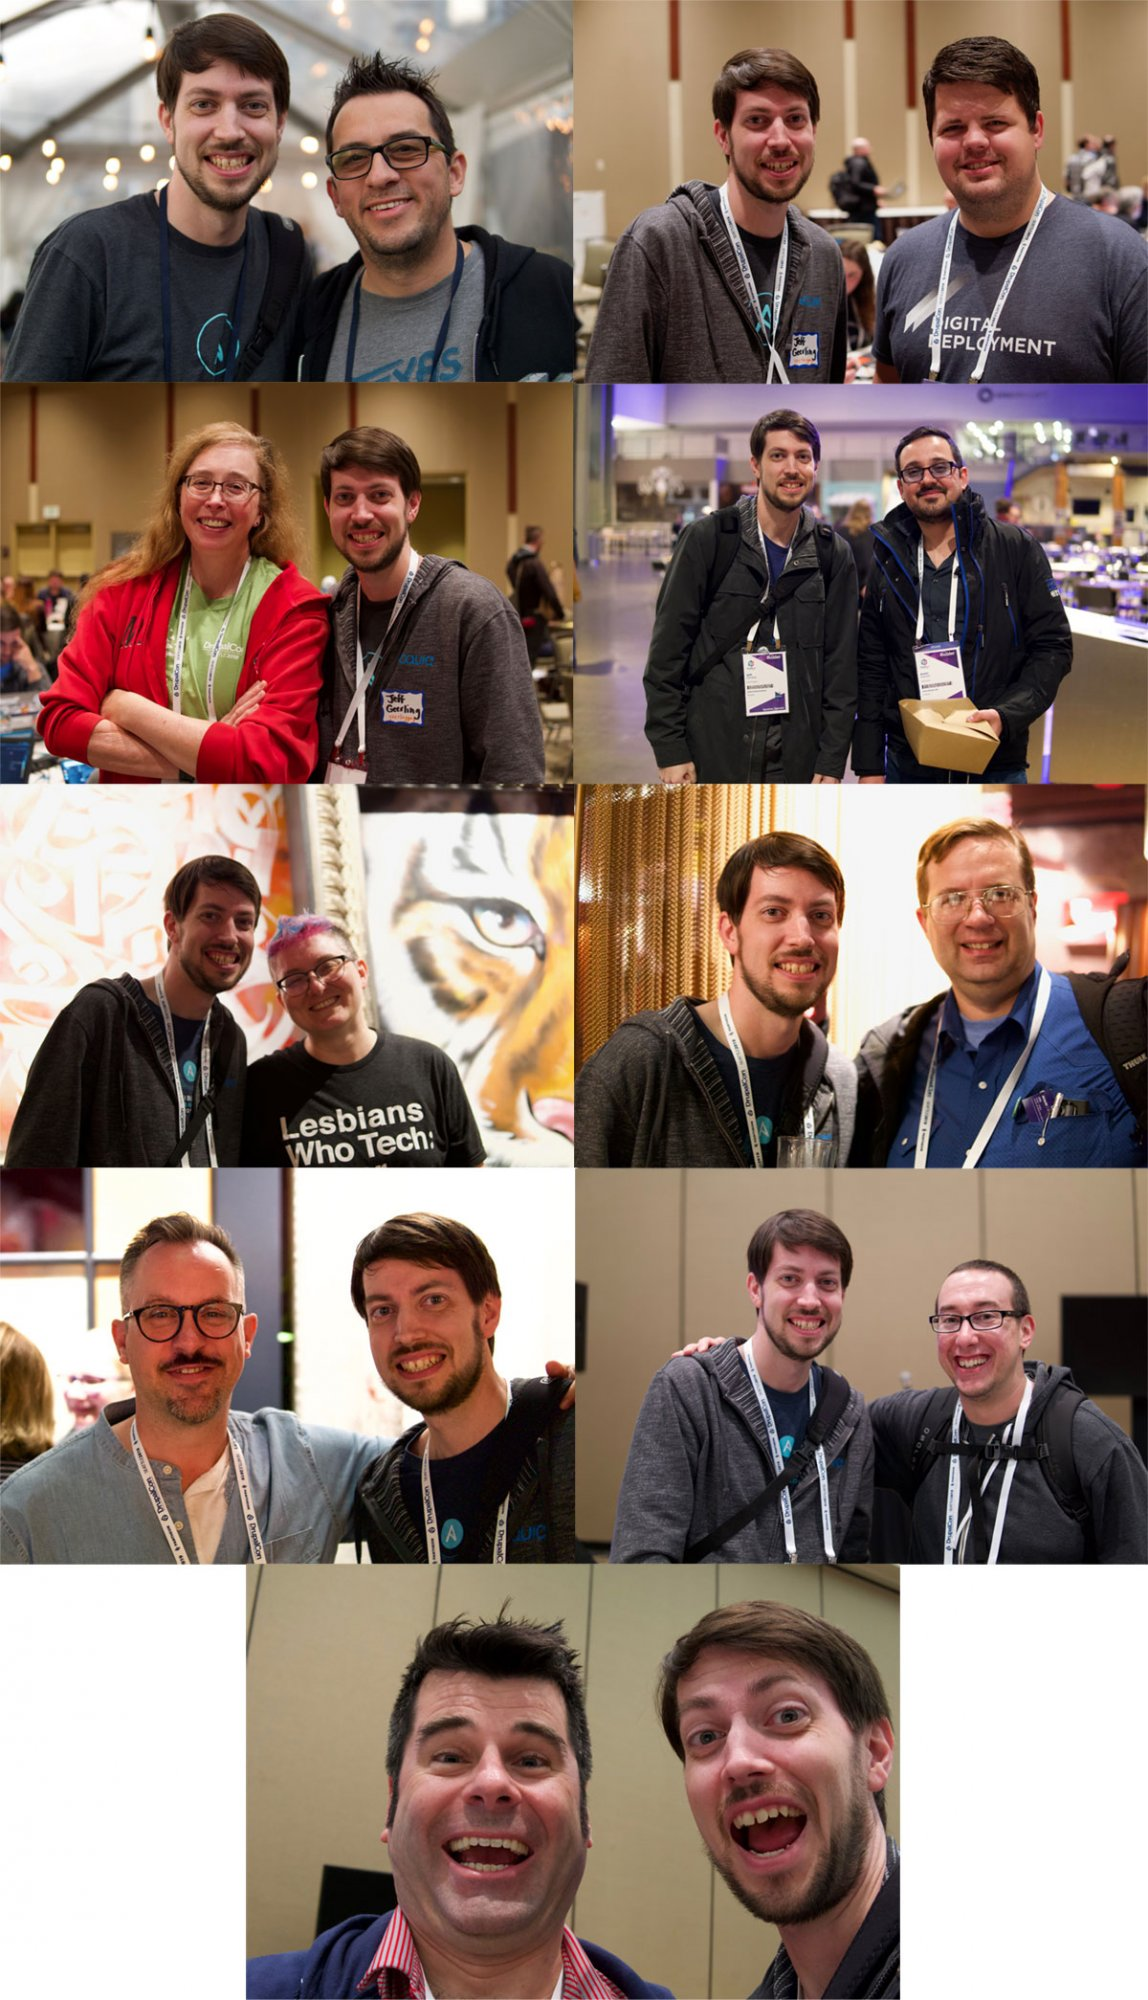 Jeff with People at DrupalCon Seattle 2019